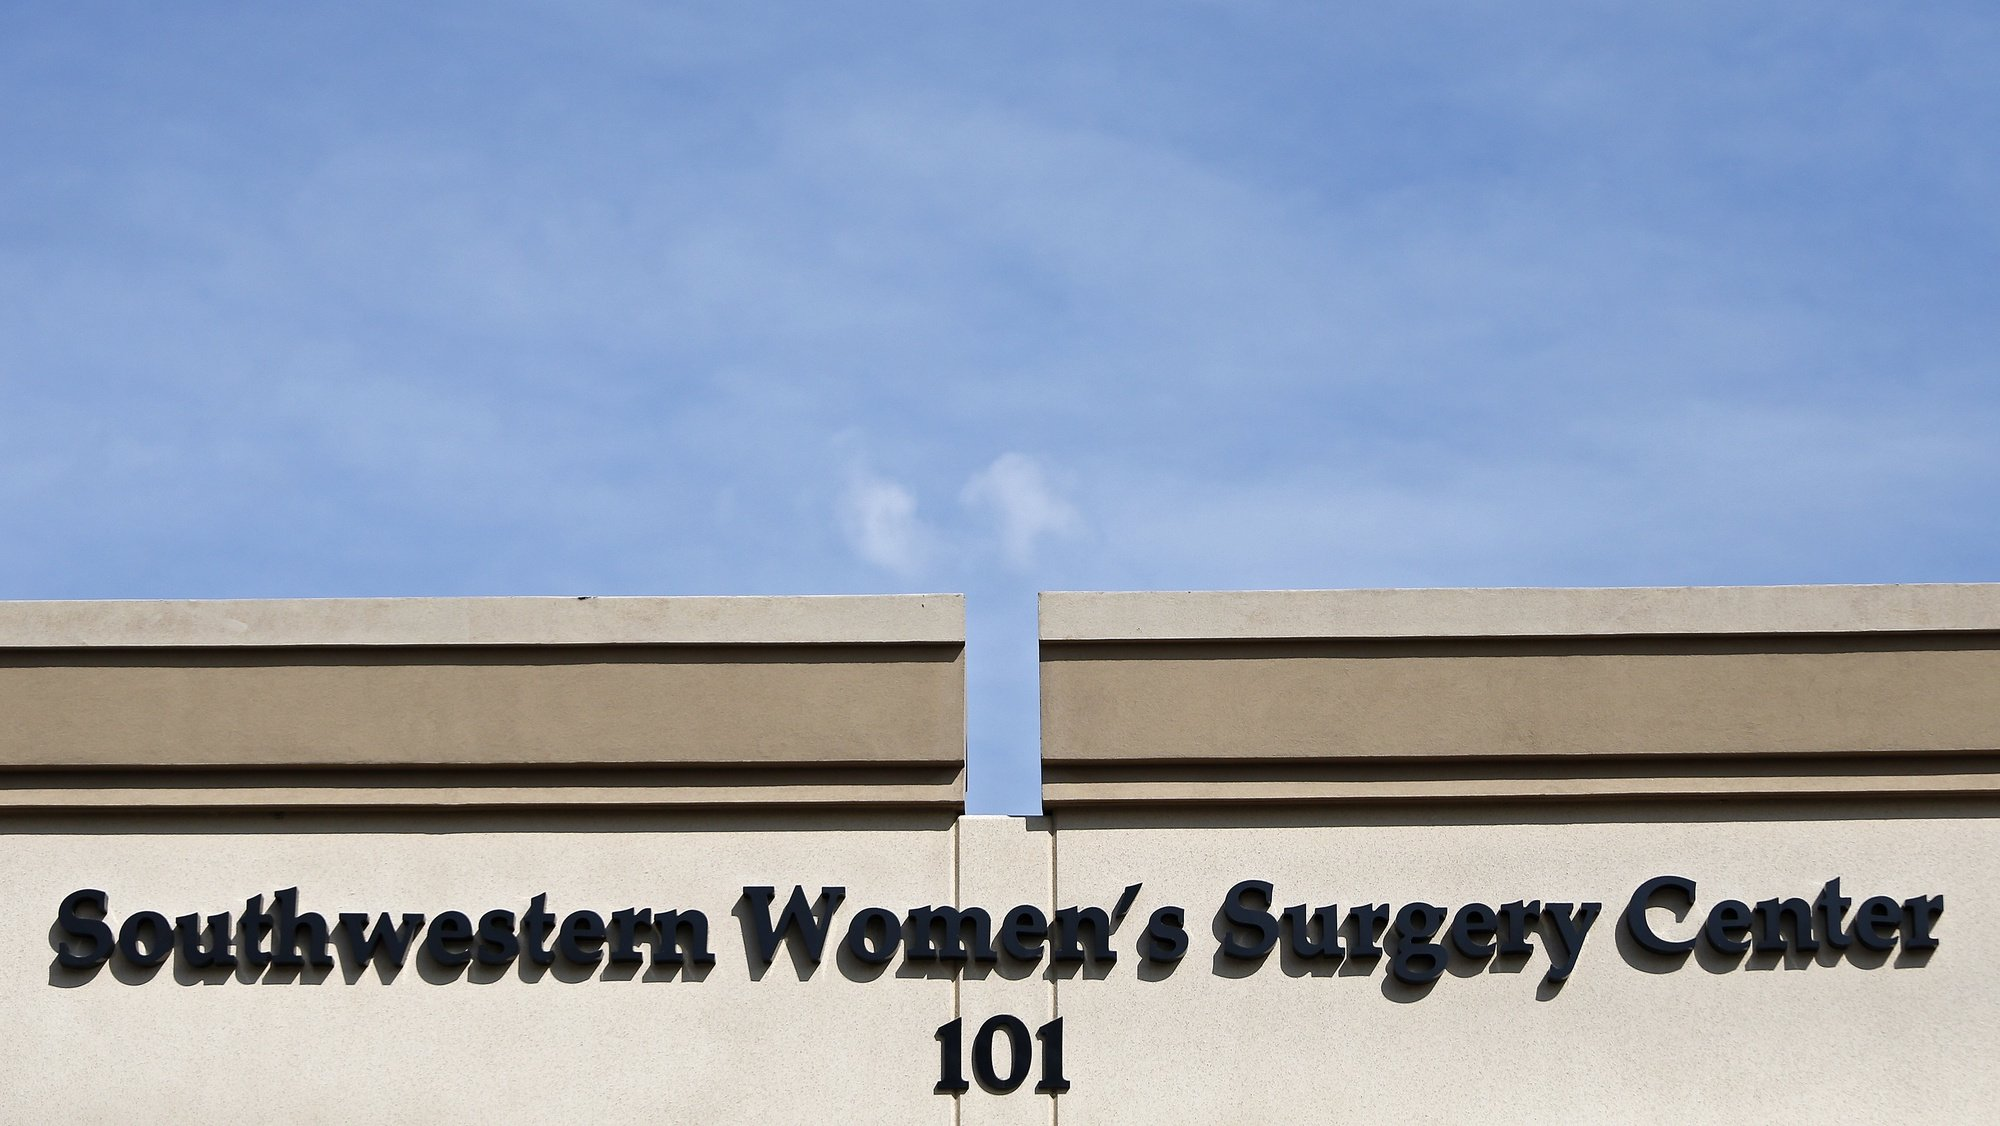 epa08404840 Southwestern Women's Surgery Center in Dallas, Texas, USA, 04 May 2020 (issued 06 May 2020). Abortion clinics in the US states of Texas, Oklahoma, Arkansas and Tennessee have been closed as part of coronavirus restrictions, despite doctors warning of the health risks associated with postponing these procedures.  EPA/LARRY W. SMITH